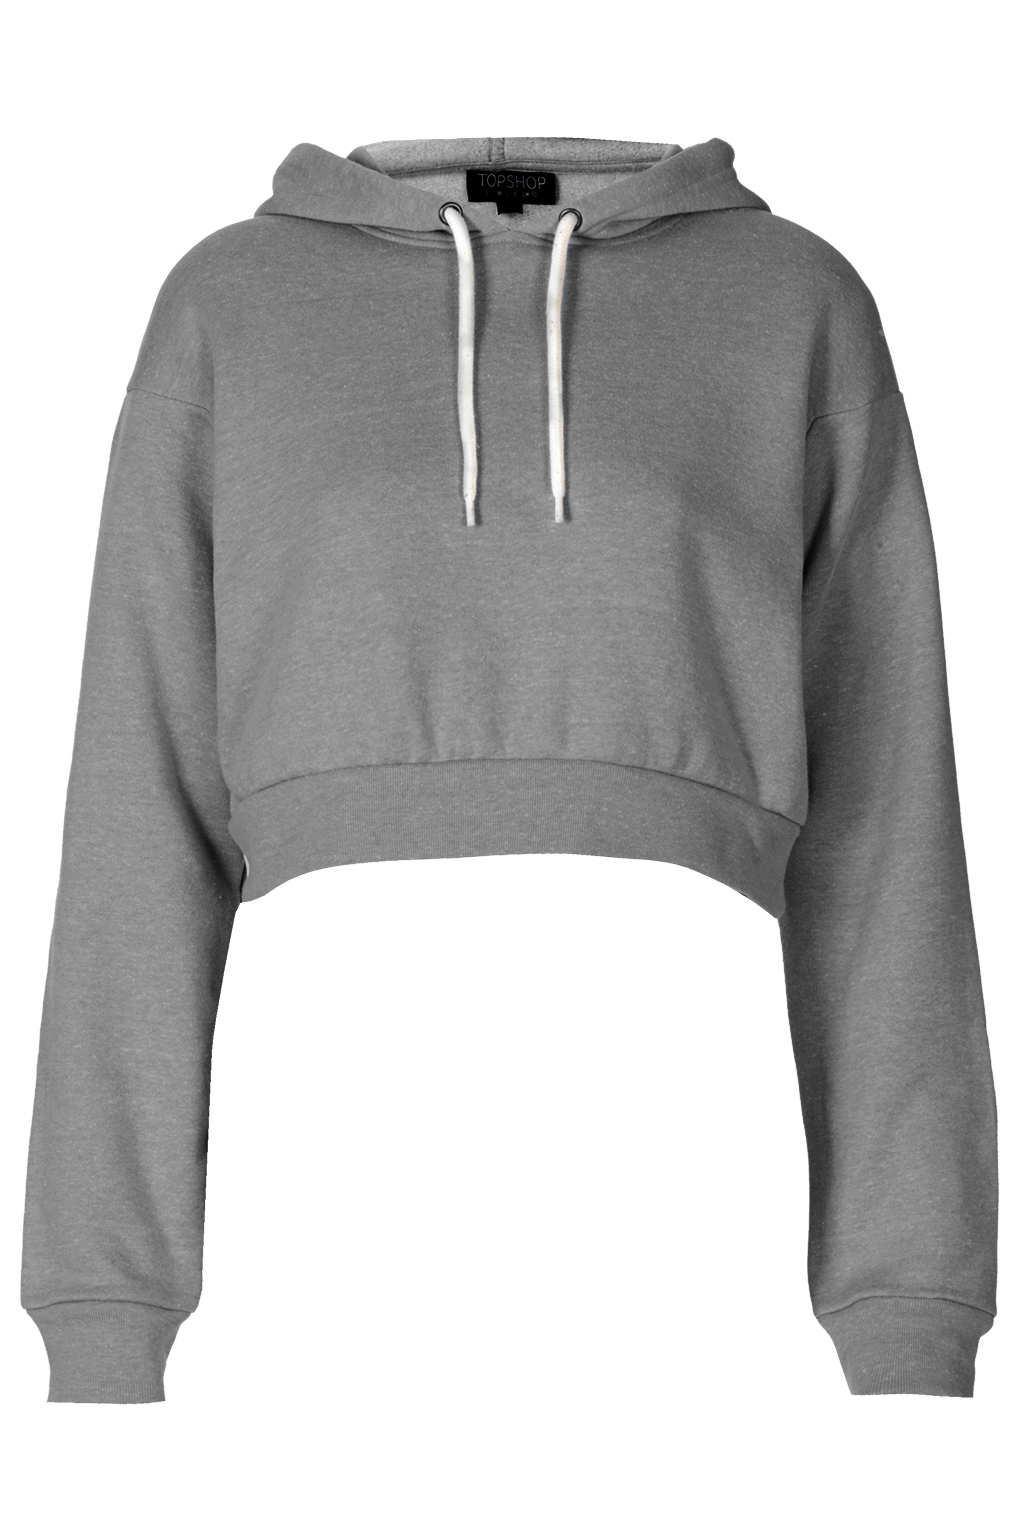 Topshop Crop Pull On Hoody in Gray | Lyst